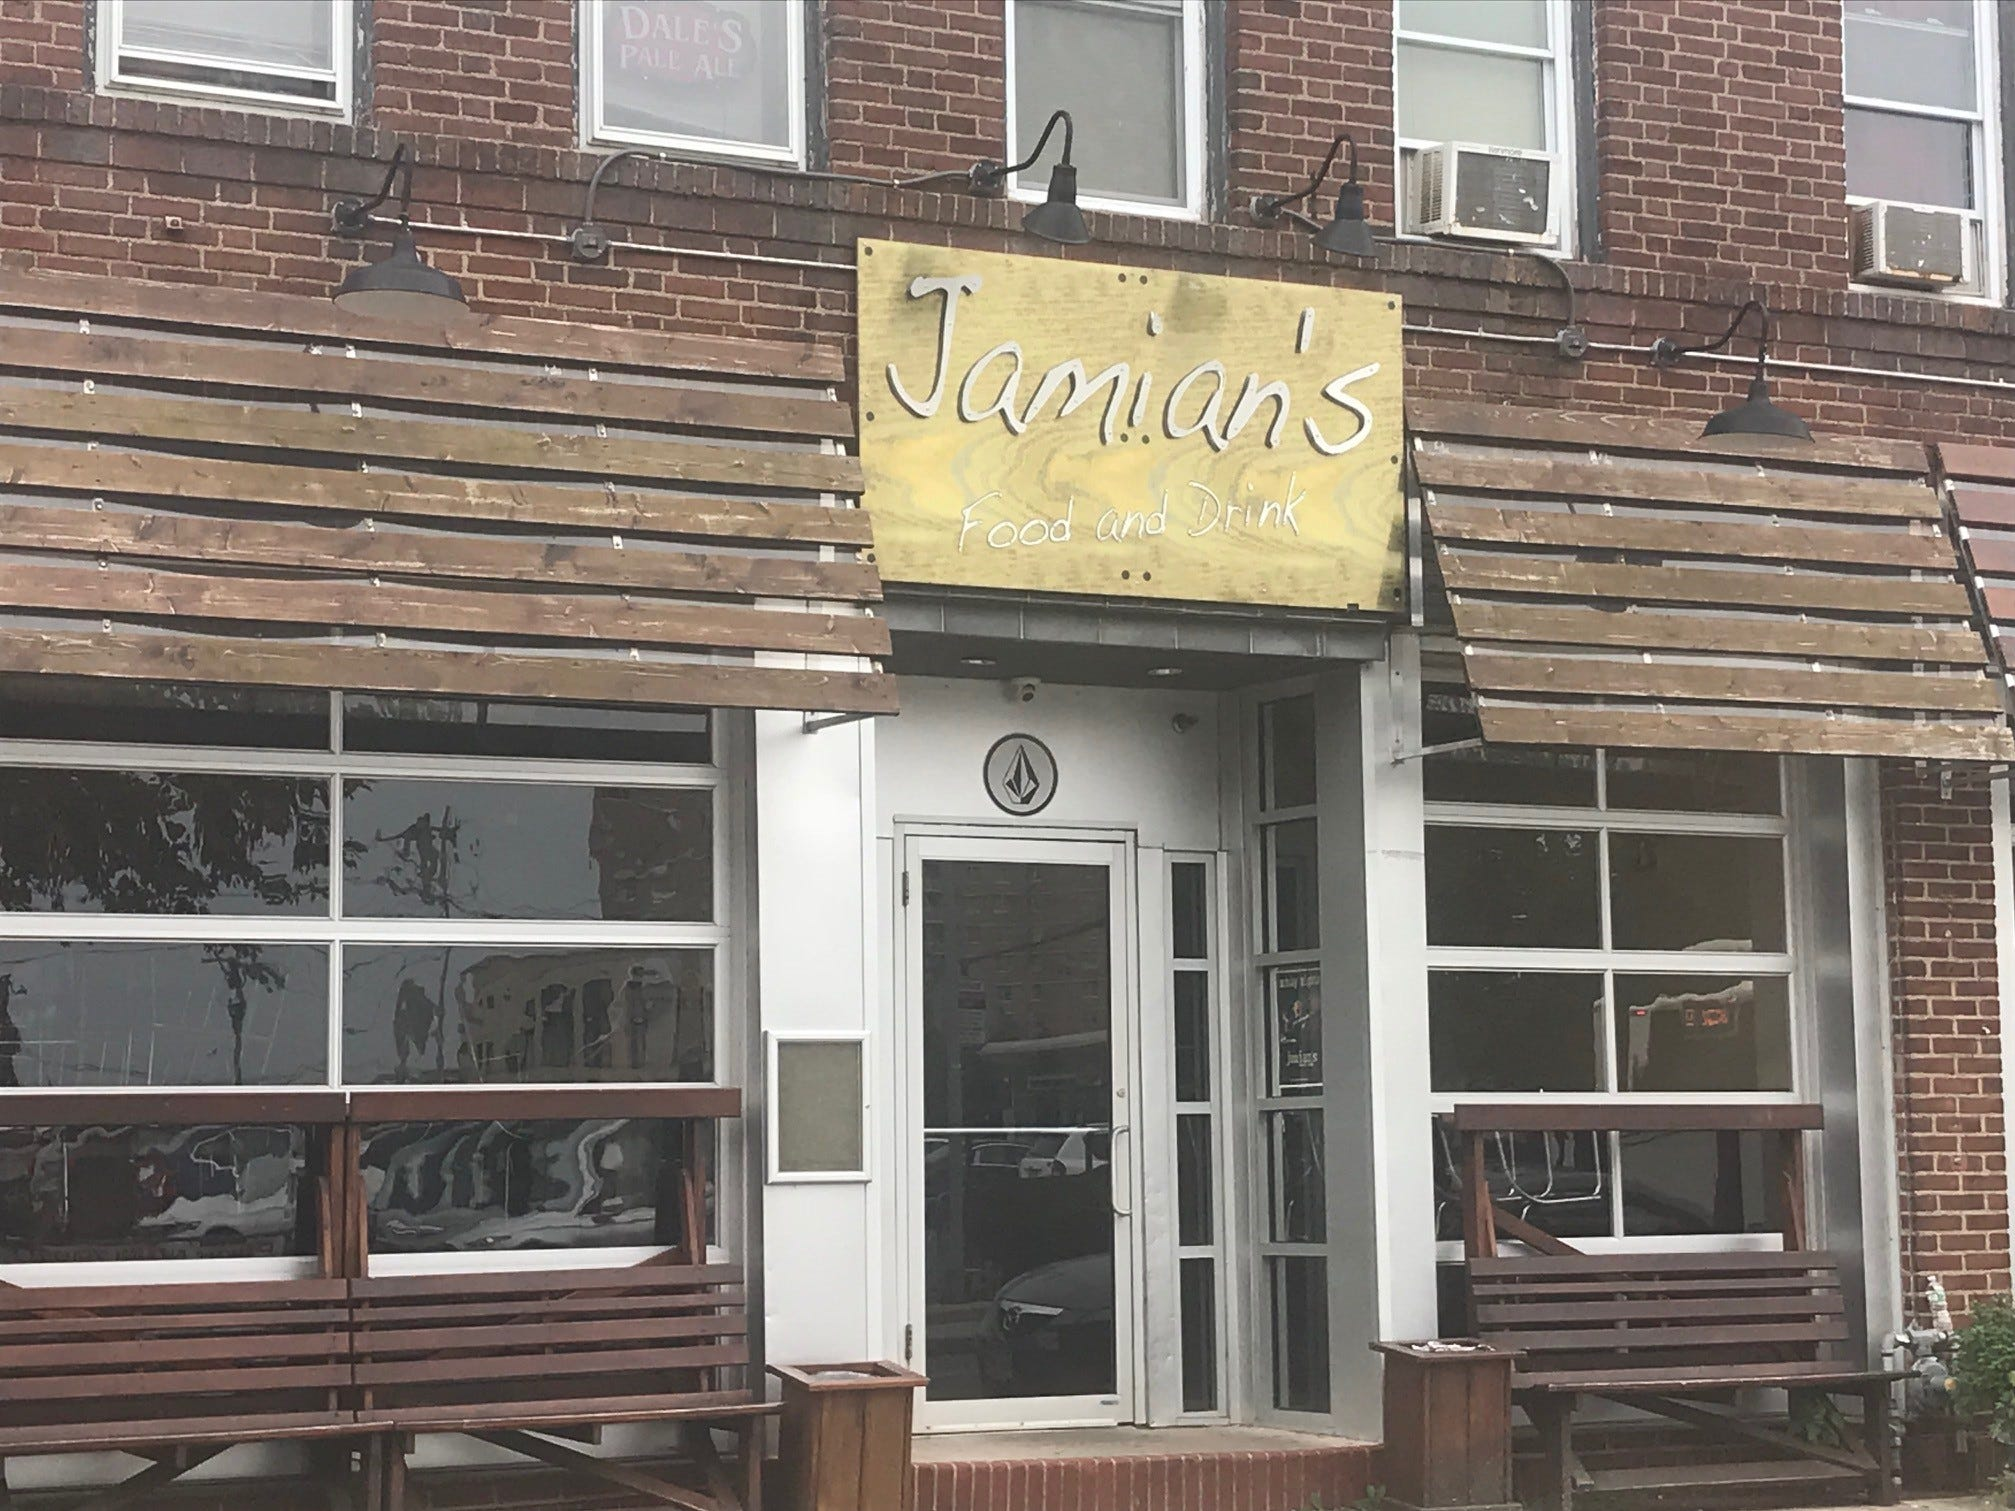 Jamian's Food and Drink is at 79 Monmouth St. in Red Bank.